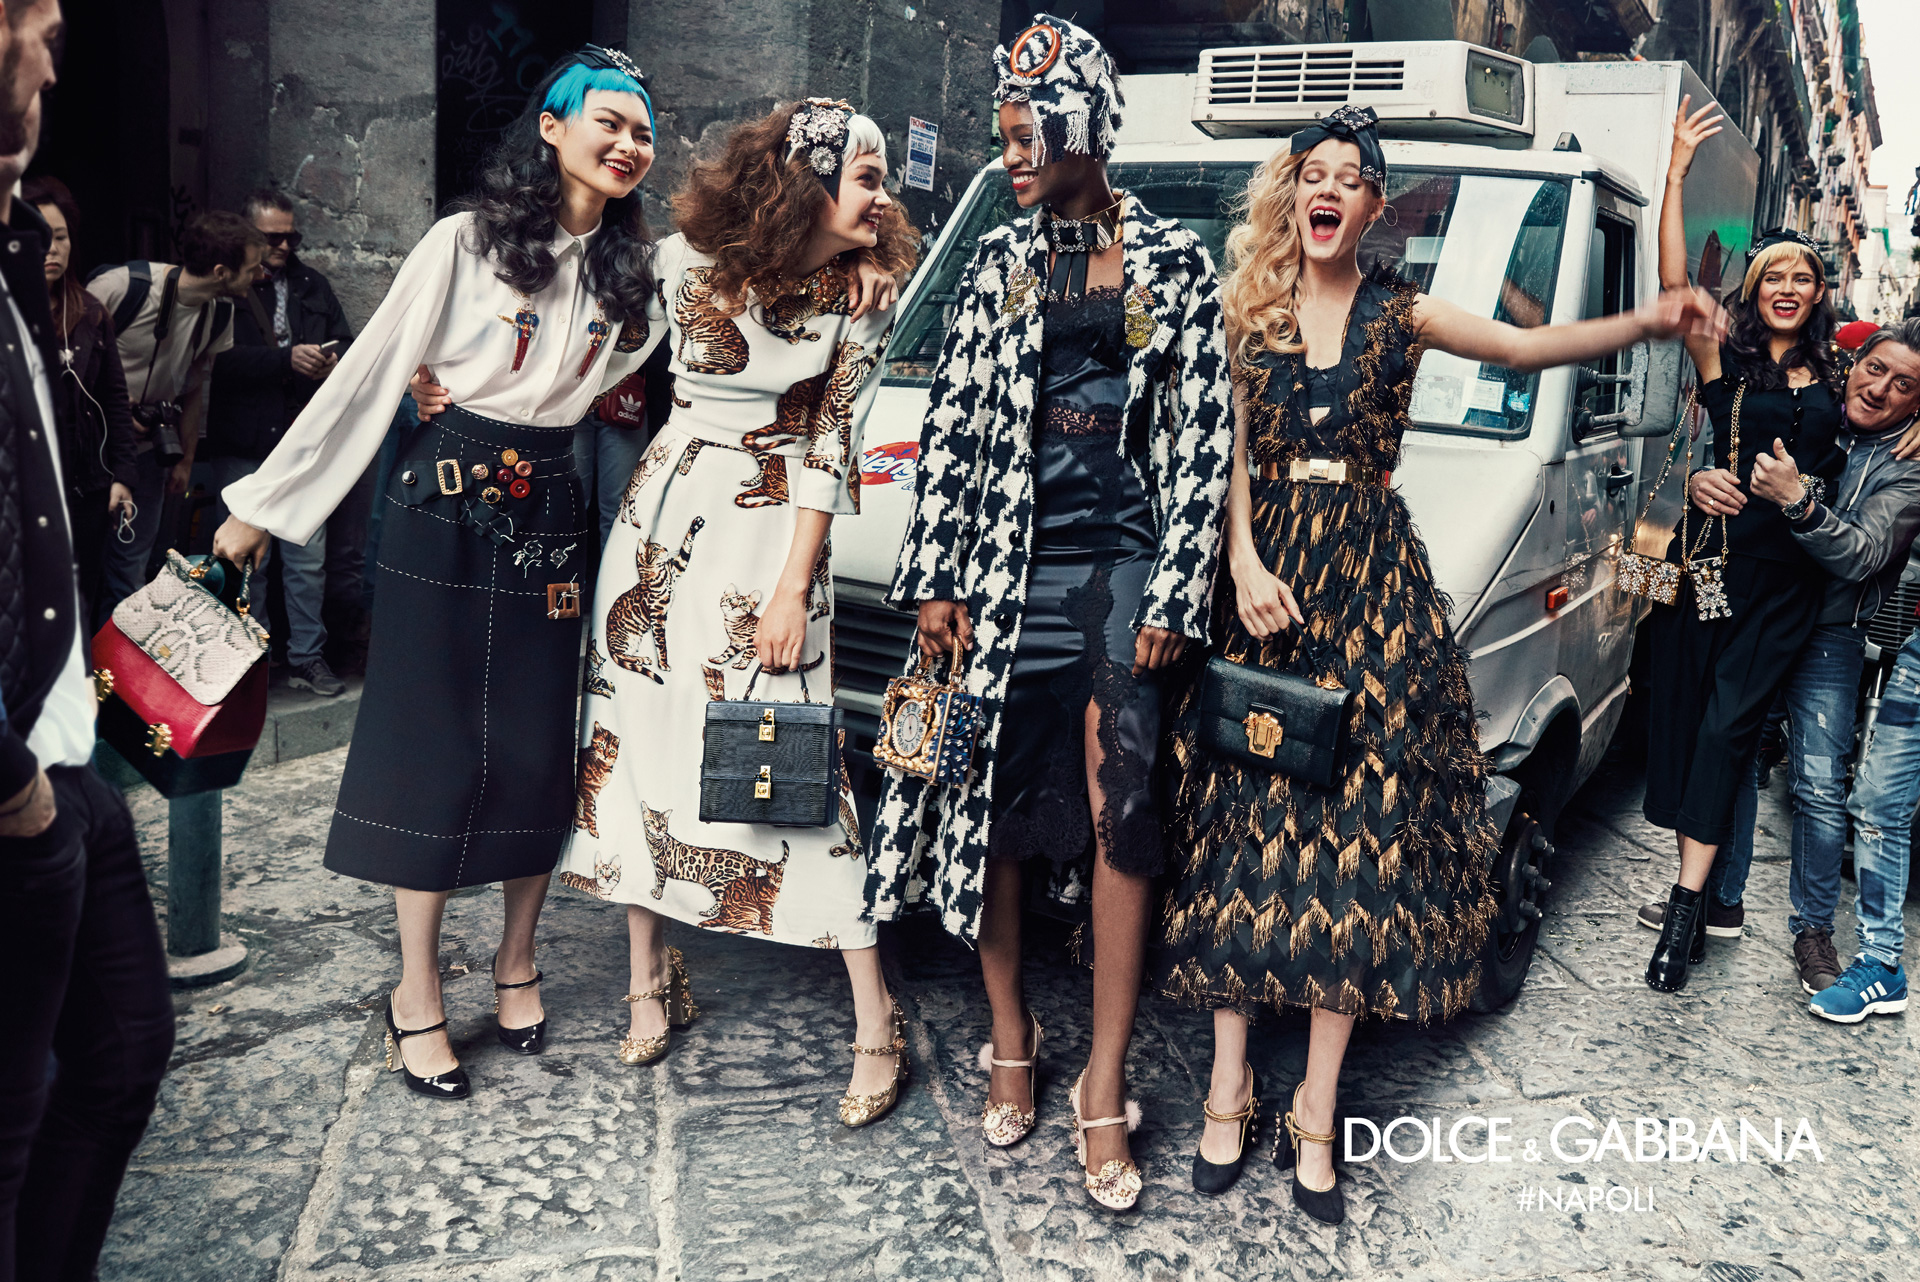 Dolce-Gabbana-Fall-Winter-2016-2017-Ad-Campaign-Naples-9